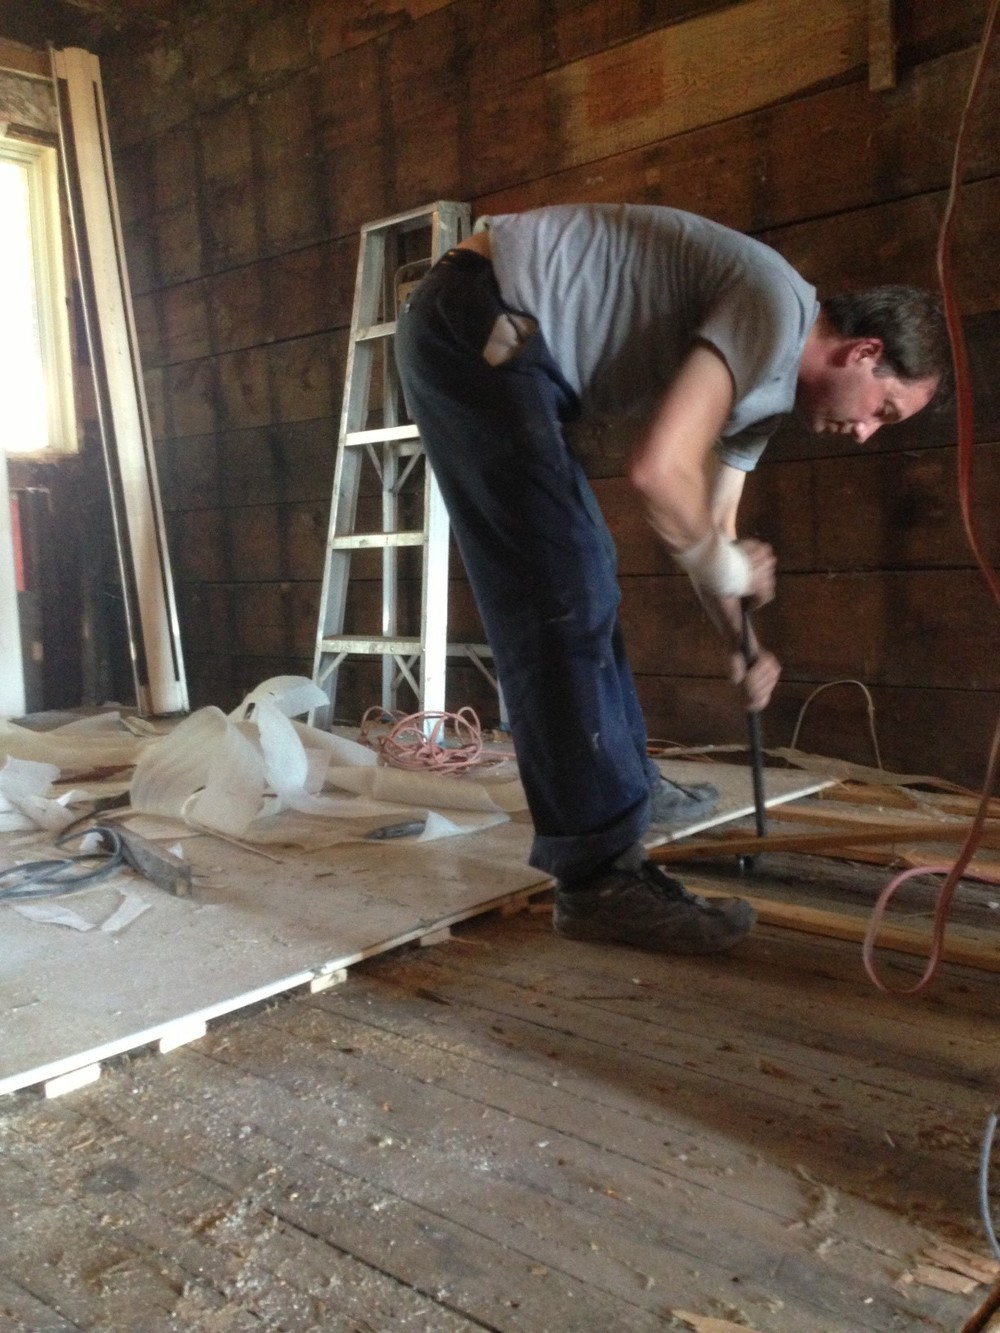 Removing the laminate flooring - exposing original wood floors!